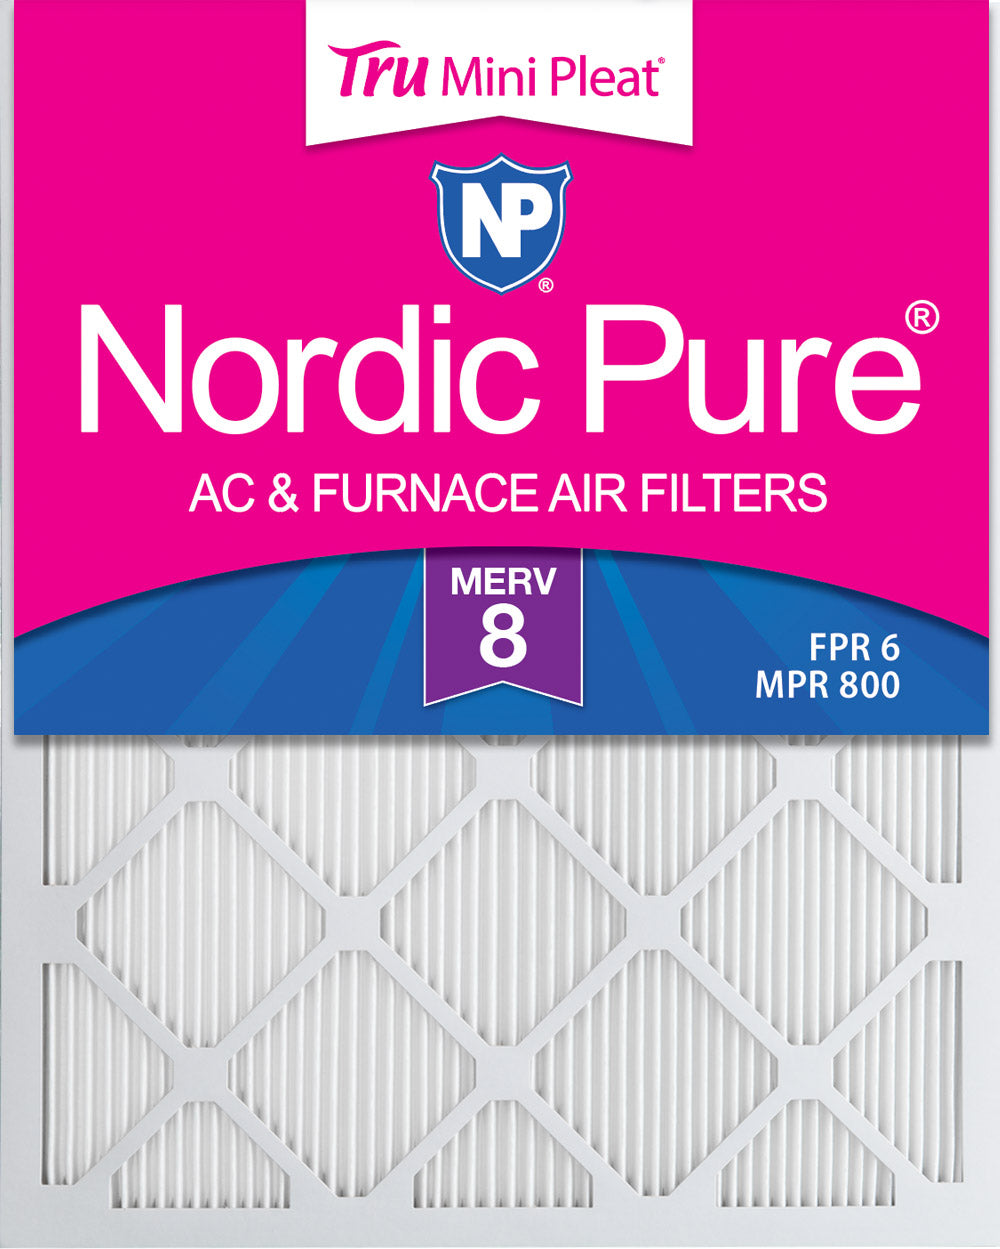 14x25x1 Tru Mini Pleat MERV 8 AC Furnace Air Filters 3 Pack